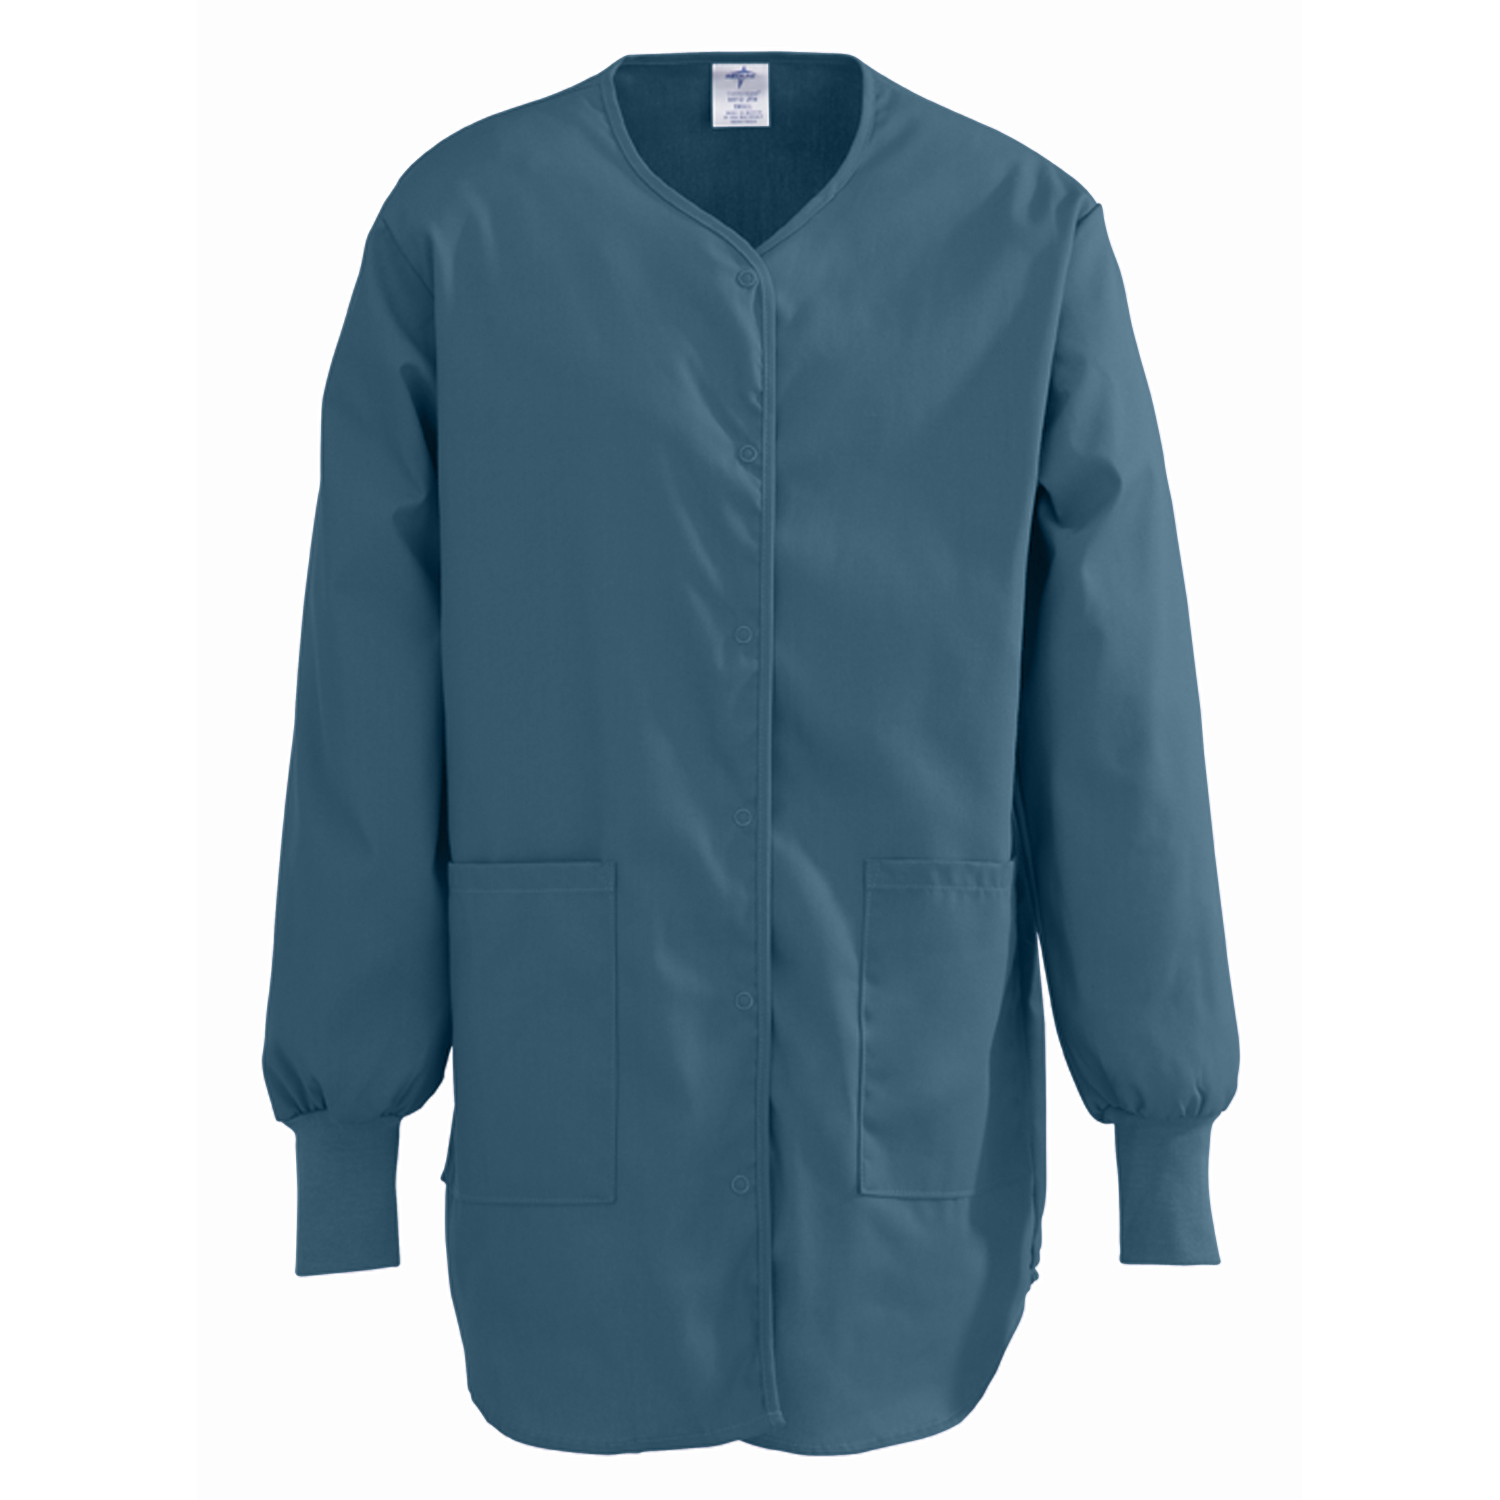 8812 Comfort Ease Shirttail Style Warm-up Jacket